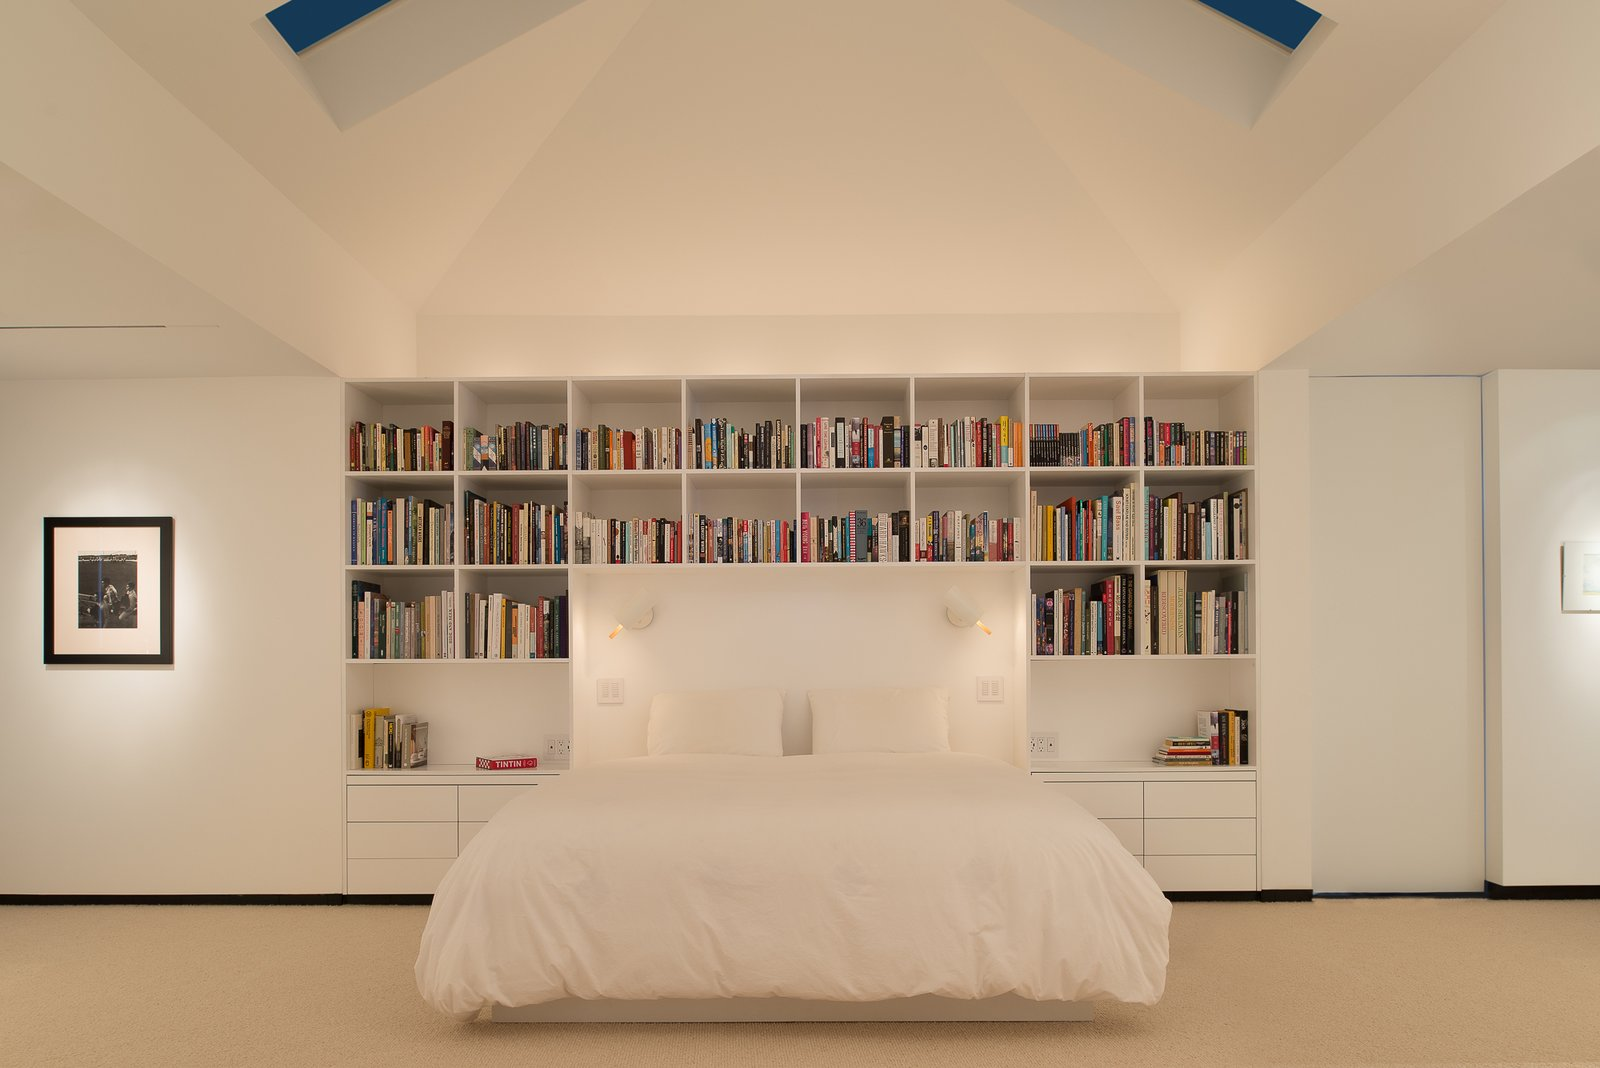 Bedroom, Bed, Bookcase, Shelves, Storage, Night Stands, Track, Wall, and Carpet Master bedroom night  Best Bedroom Shelves Bookcase Night Stands Photos from House in the Woods